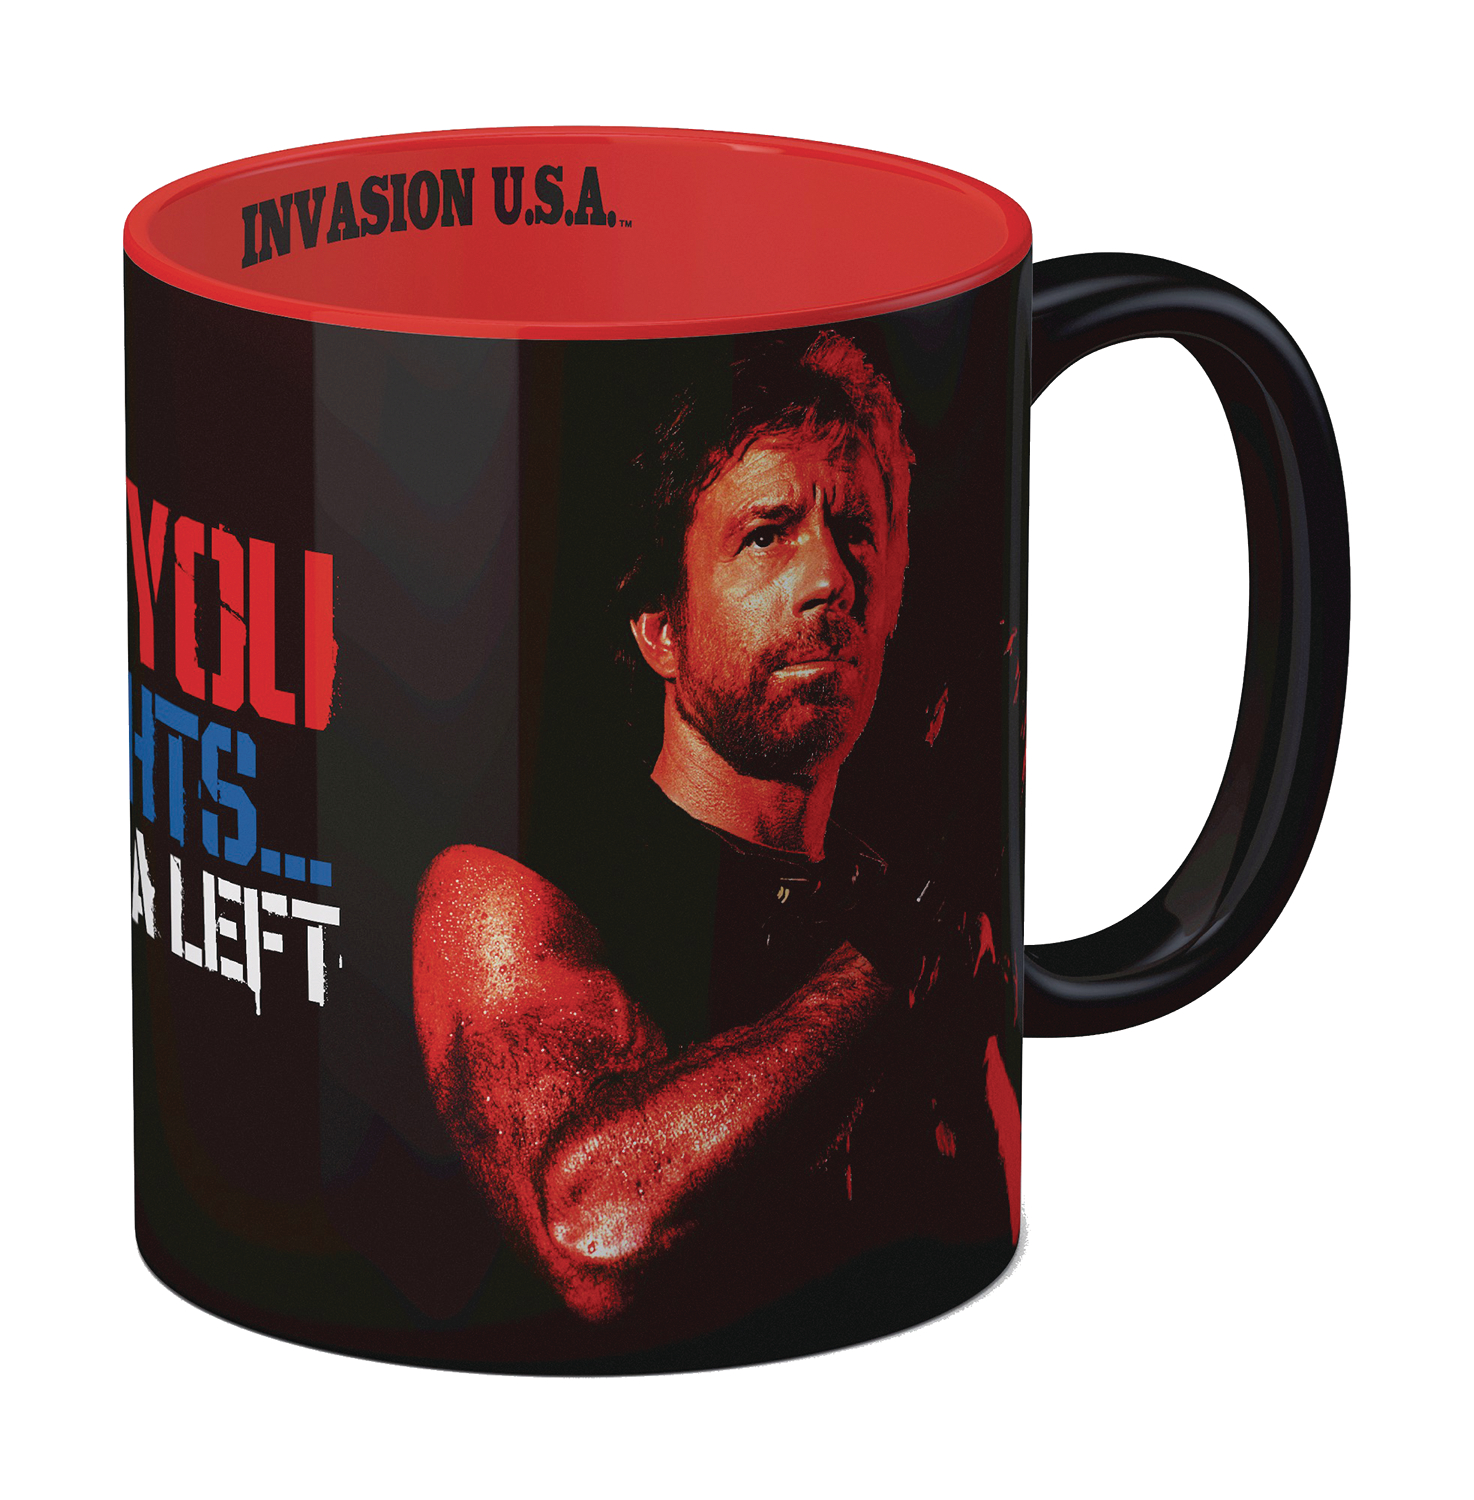 TOUGH GUY INVASION USA IM GONNA HIT YOU CERAMIC MUG